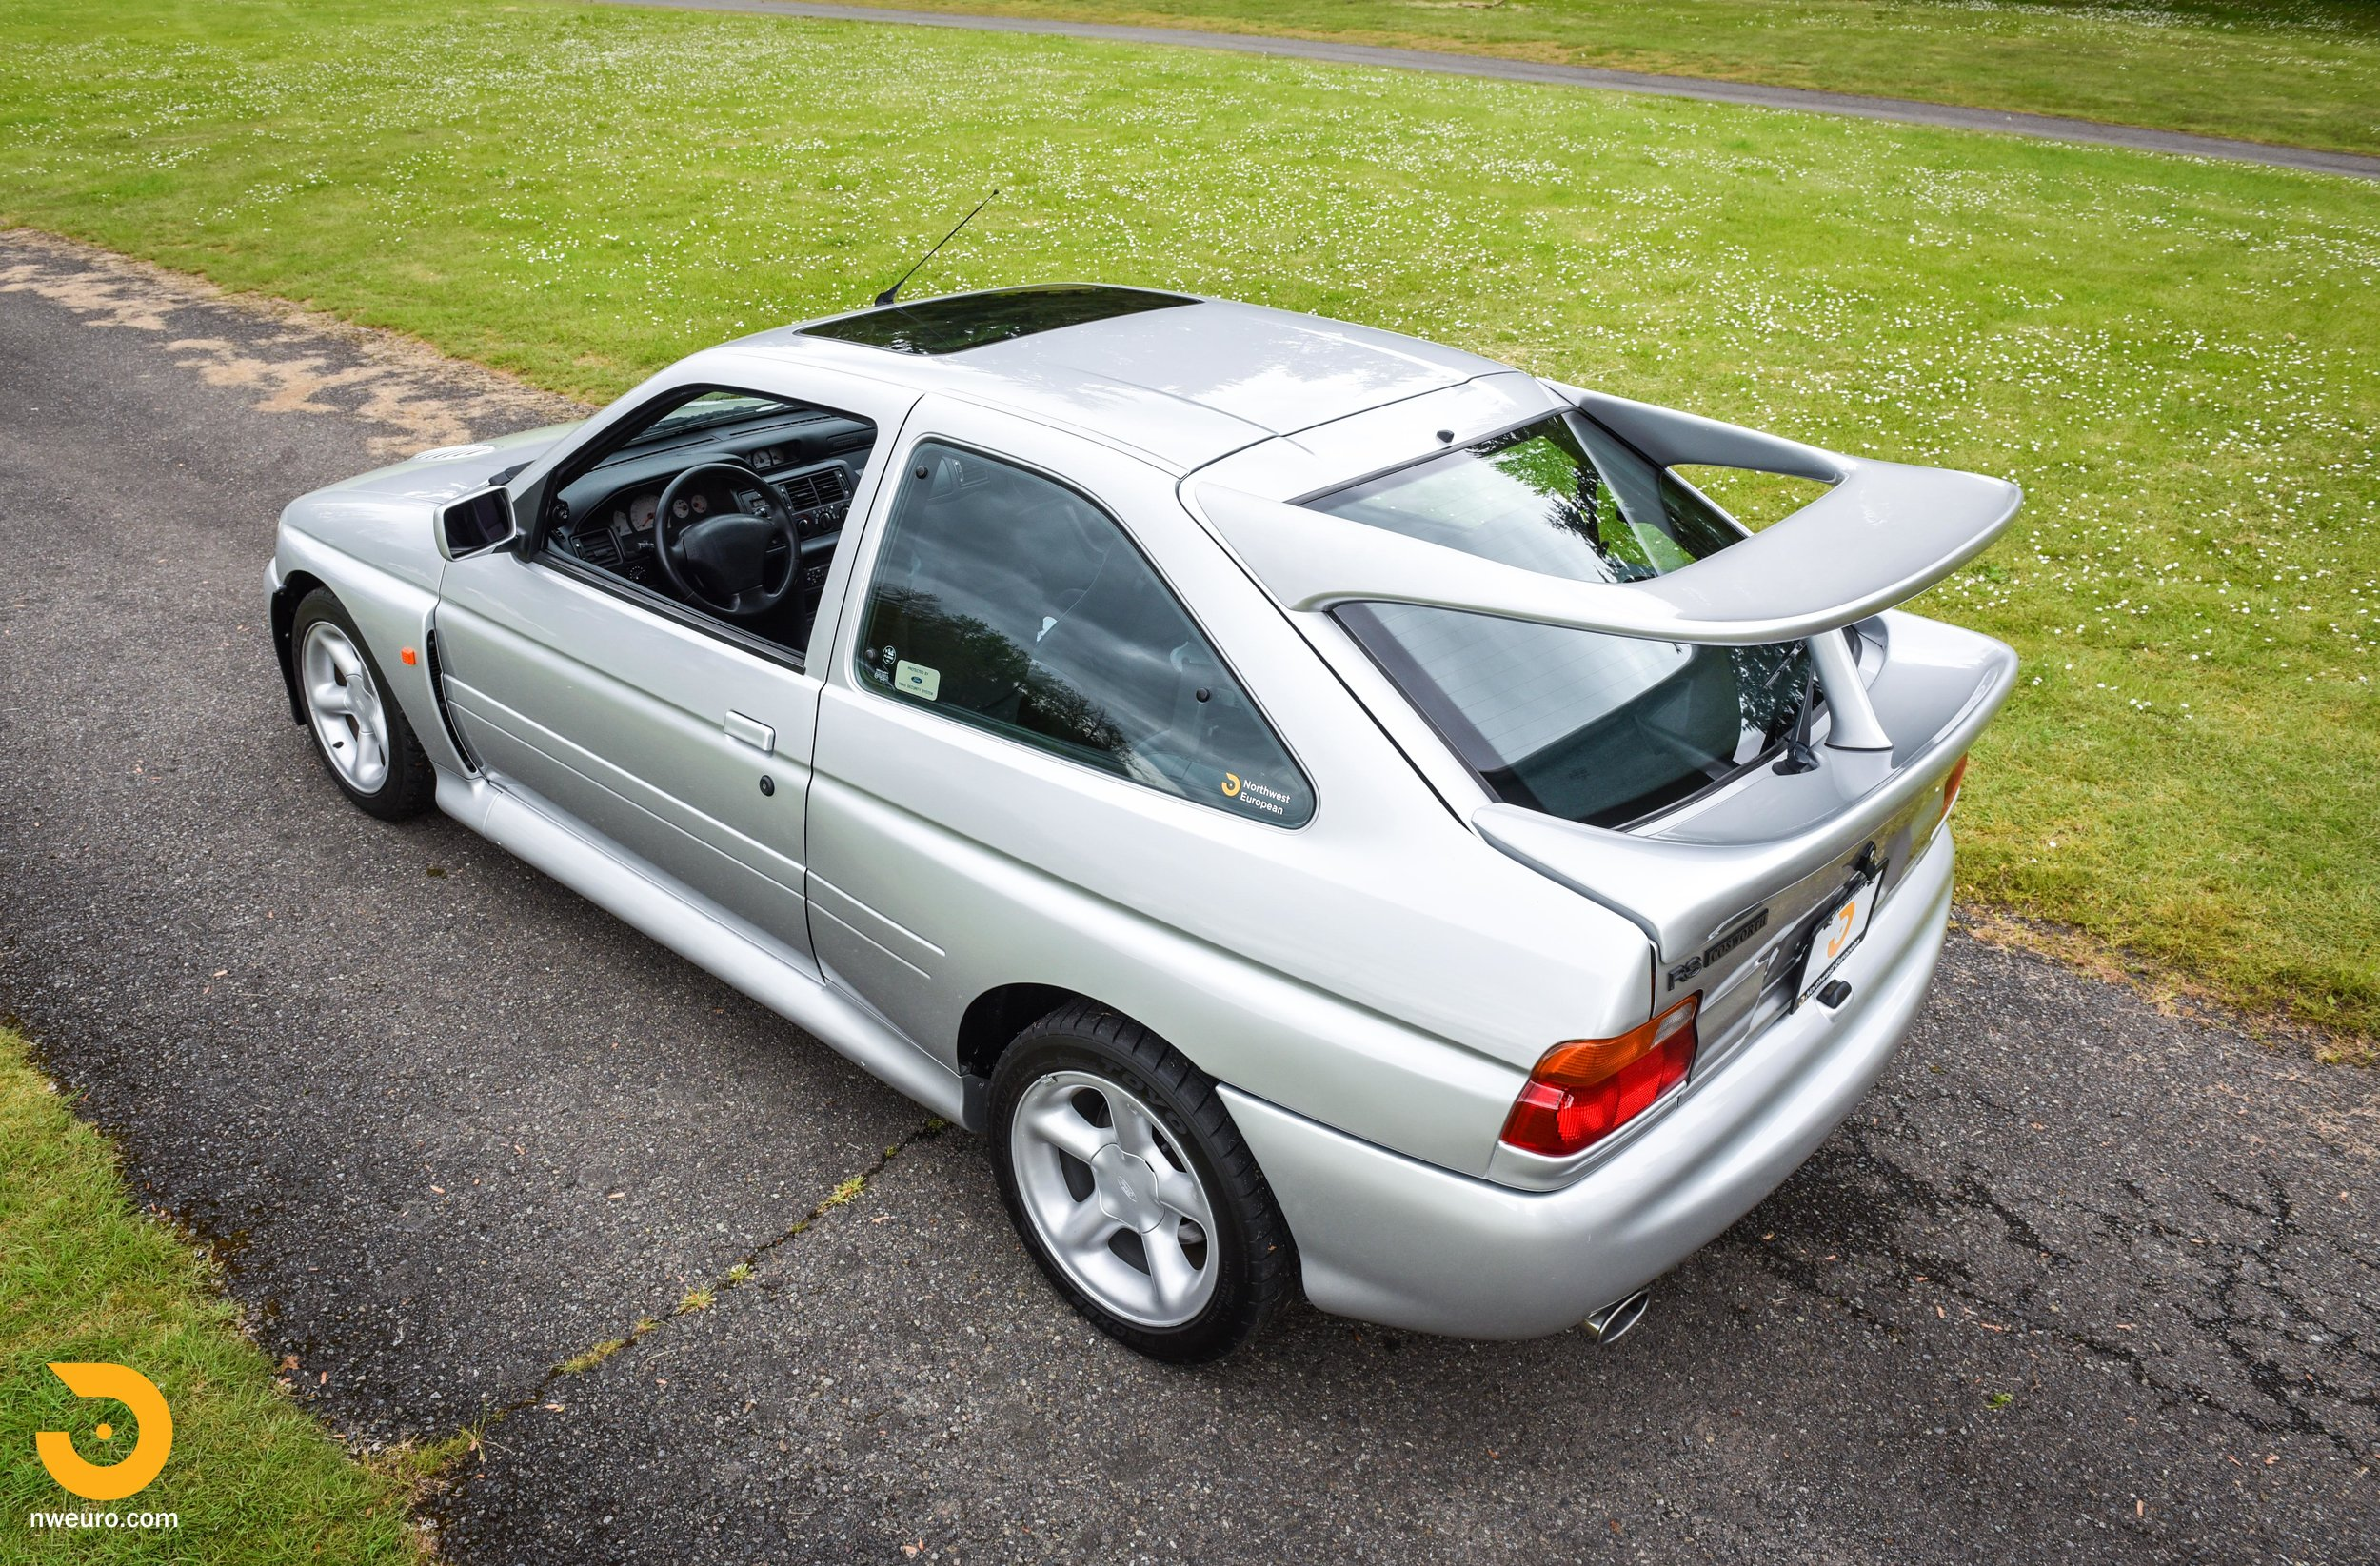 1995 Ford Escort Cosworth RS Silver-63.jpg